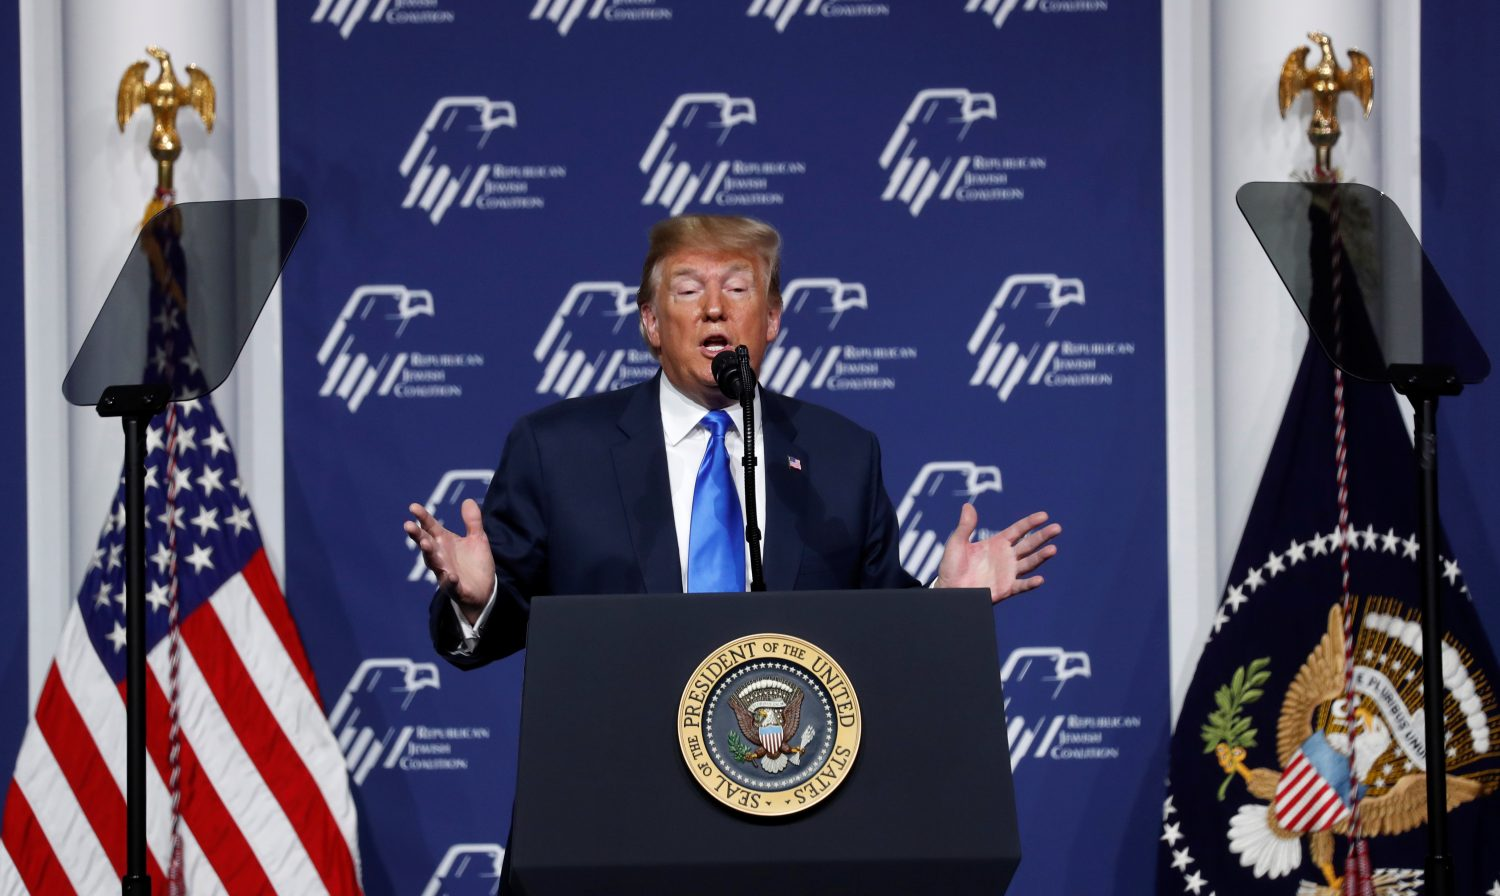 U.S. President Donald Trump addresses the Republican Jewish Coalition 2019 Annual Leadership Meeting in Las Vegas, Nevada, U.S., April 6, 2019. REUTERS/Kevin Lamarque